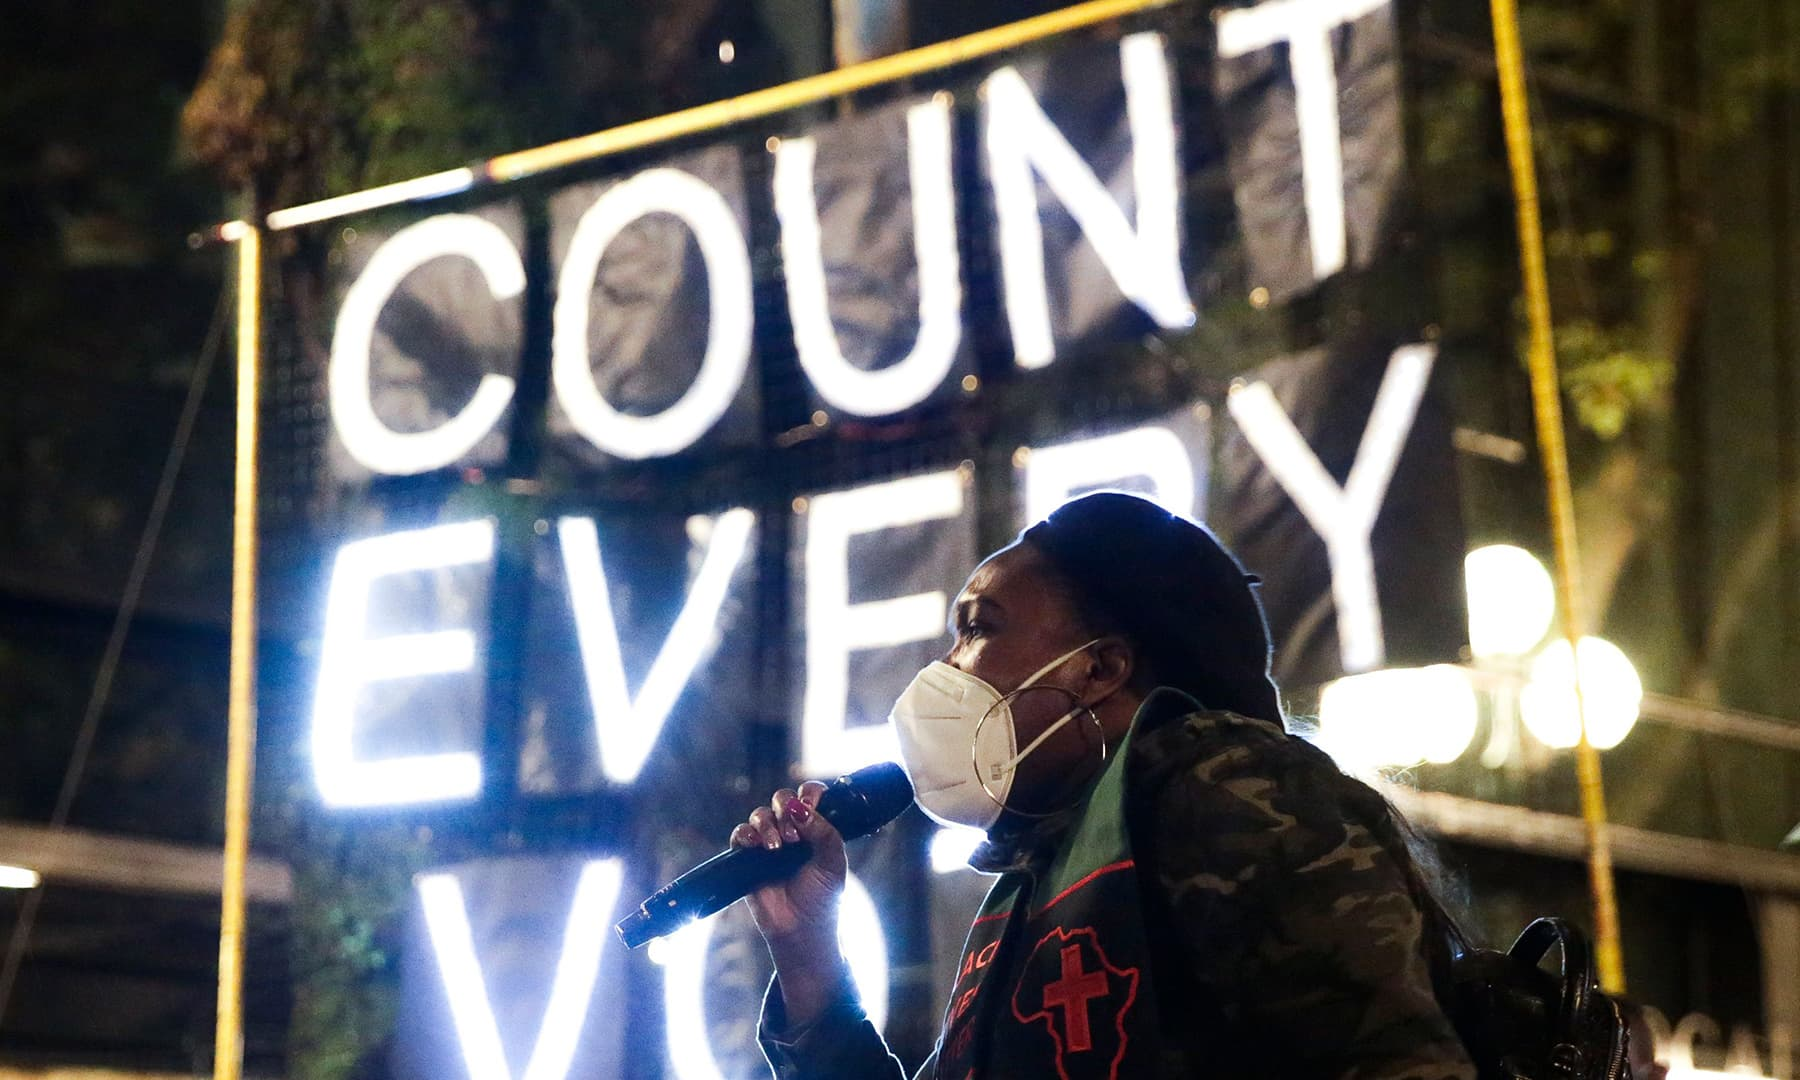 """Reverend Bianca Davis-Lovelace speaks at a rally and march to """"Count Every Vote, Protect Every Person"""" in Seattle, Washington on November 4. — AFP"""